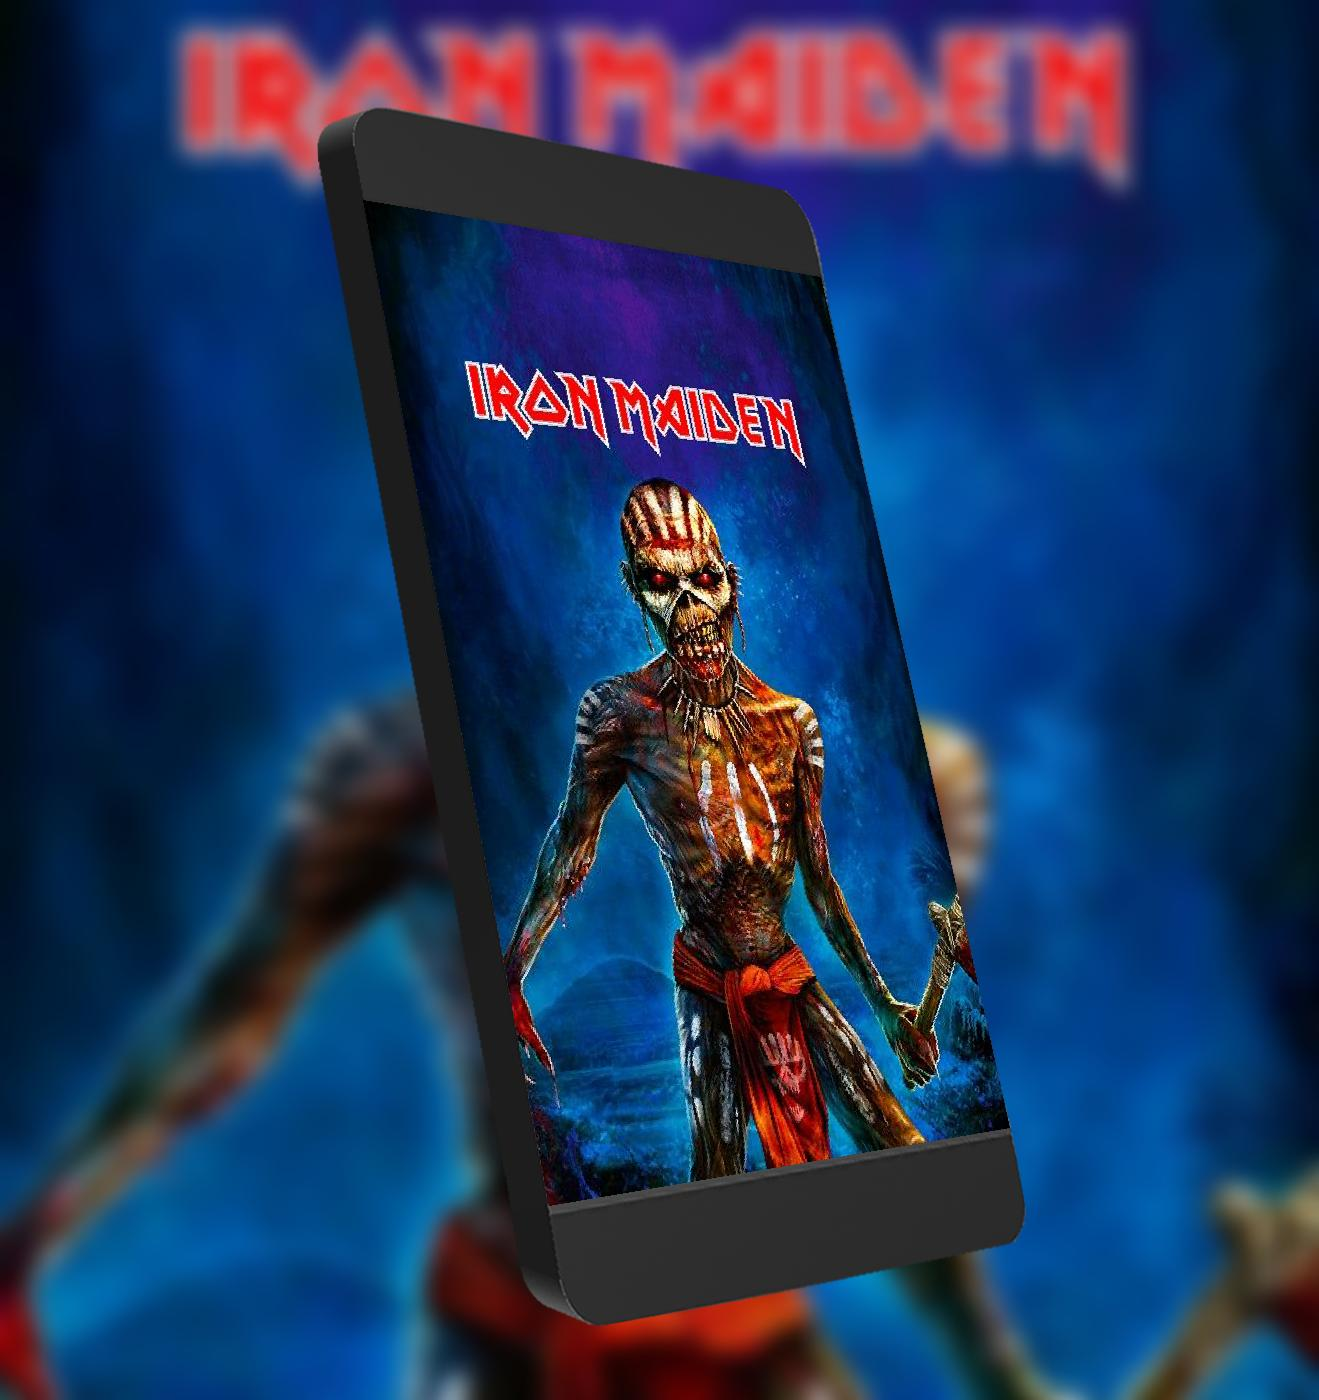 Iron Maiden Wallpaper For Android Apk Download